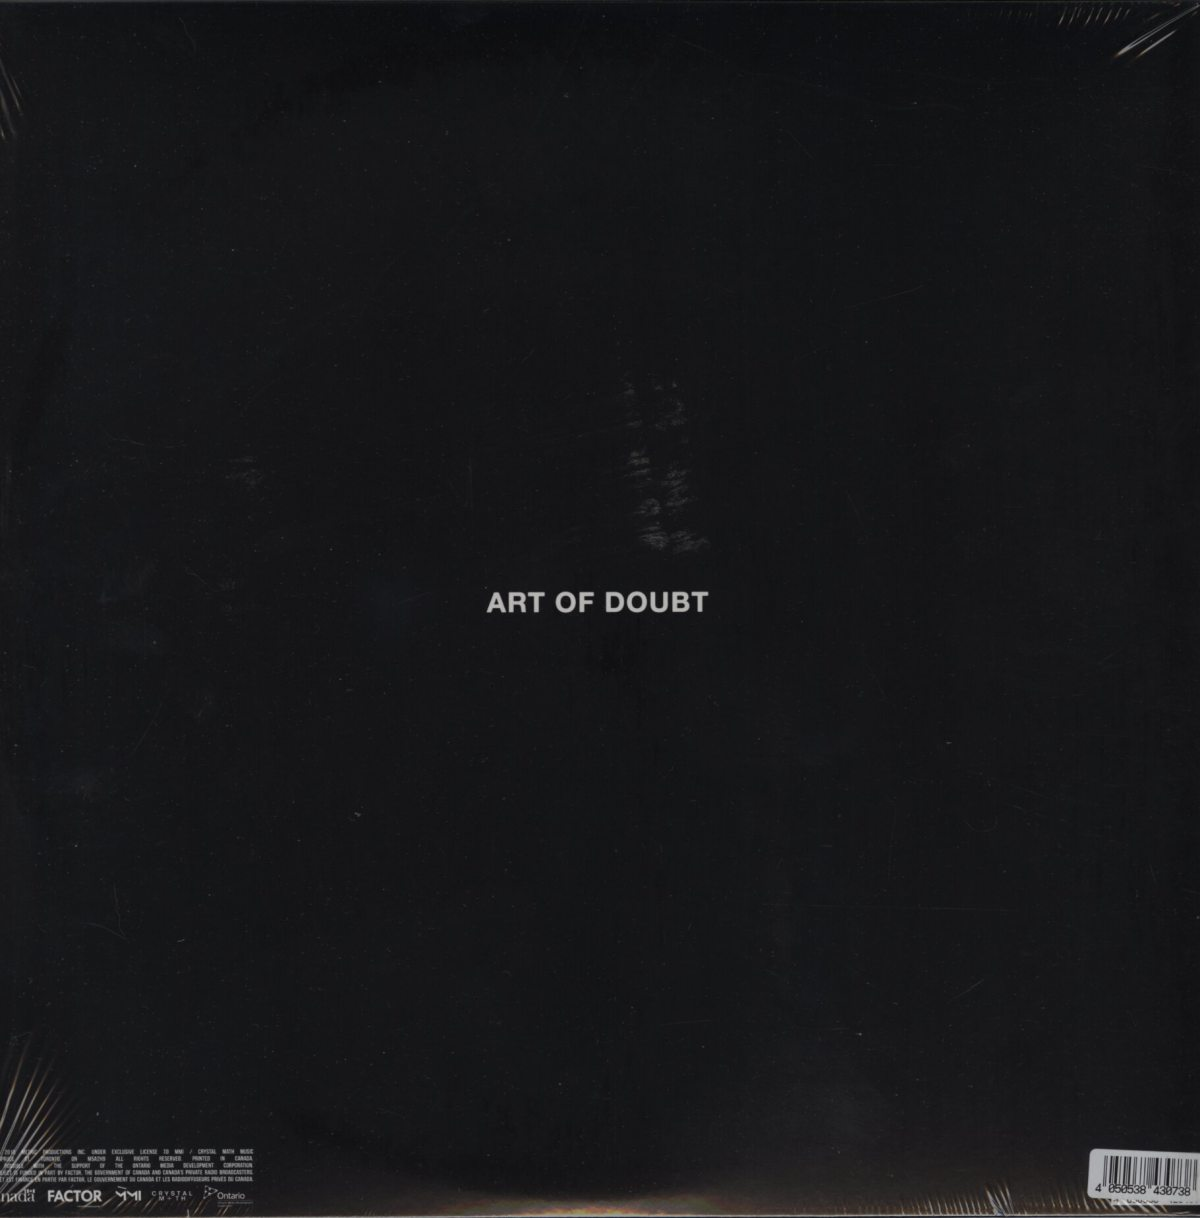 Metric - Art Of Doubt - Limited Edition, White Colored Vinyl, BMG, 2018